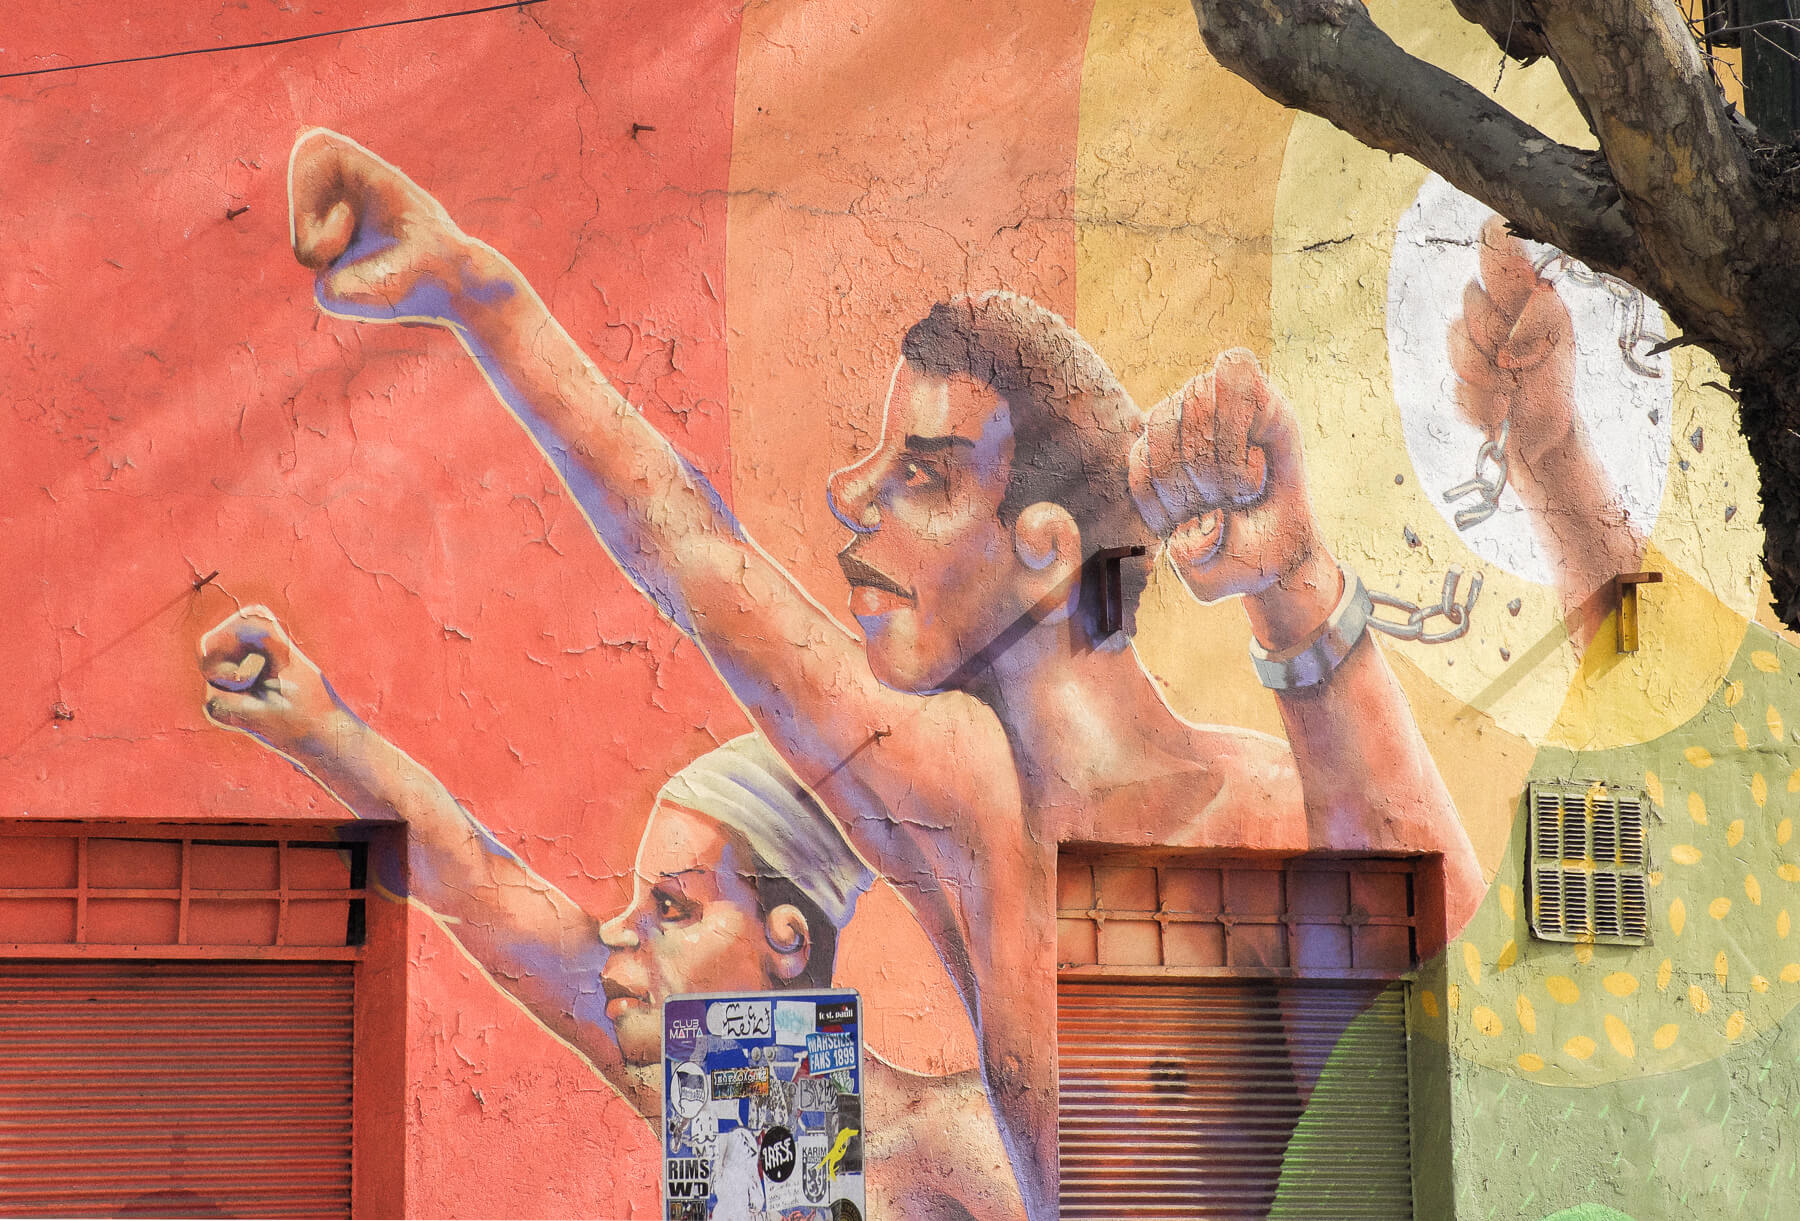 Rainbow artwork on the side of a building of 4 dark skinned fists breaking free of chains